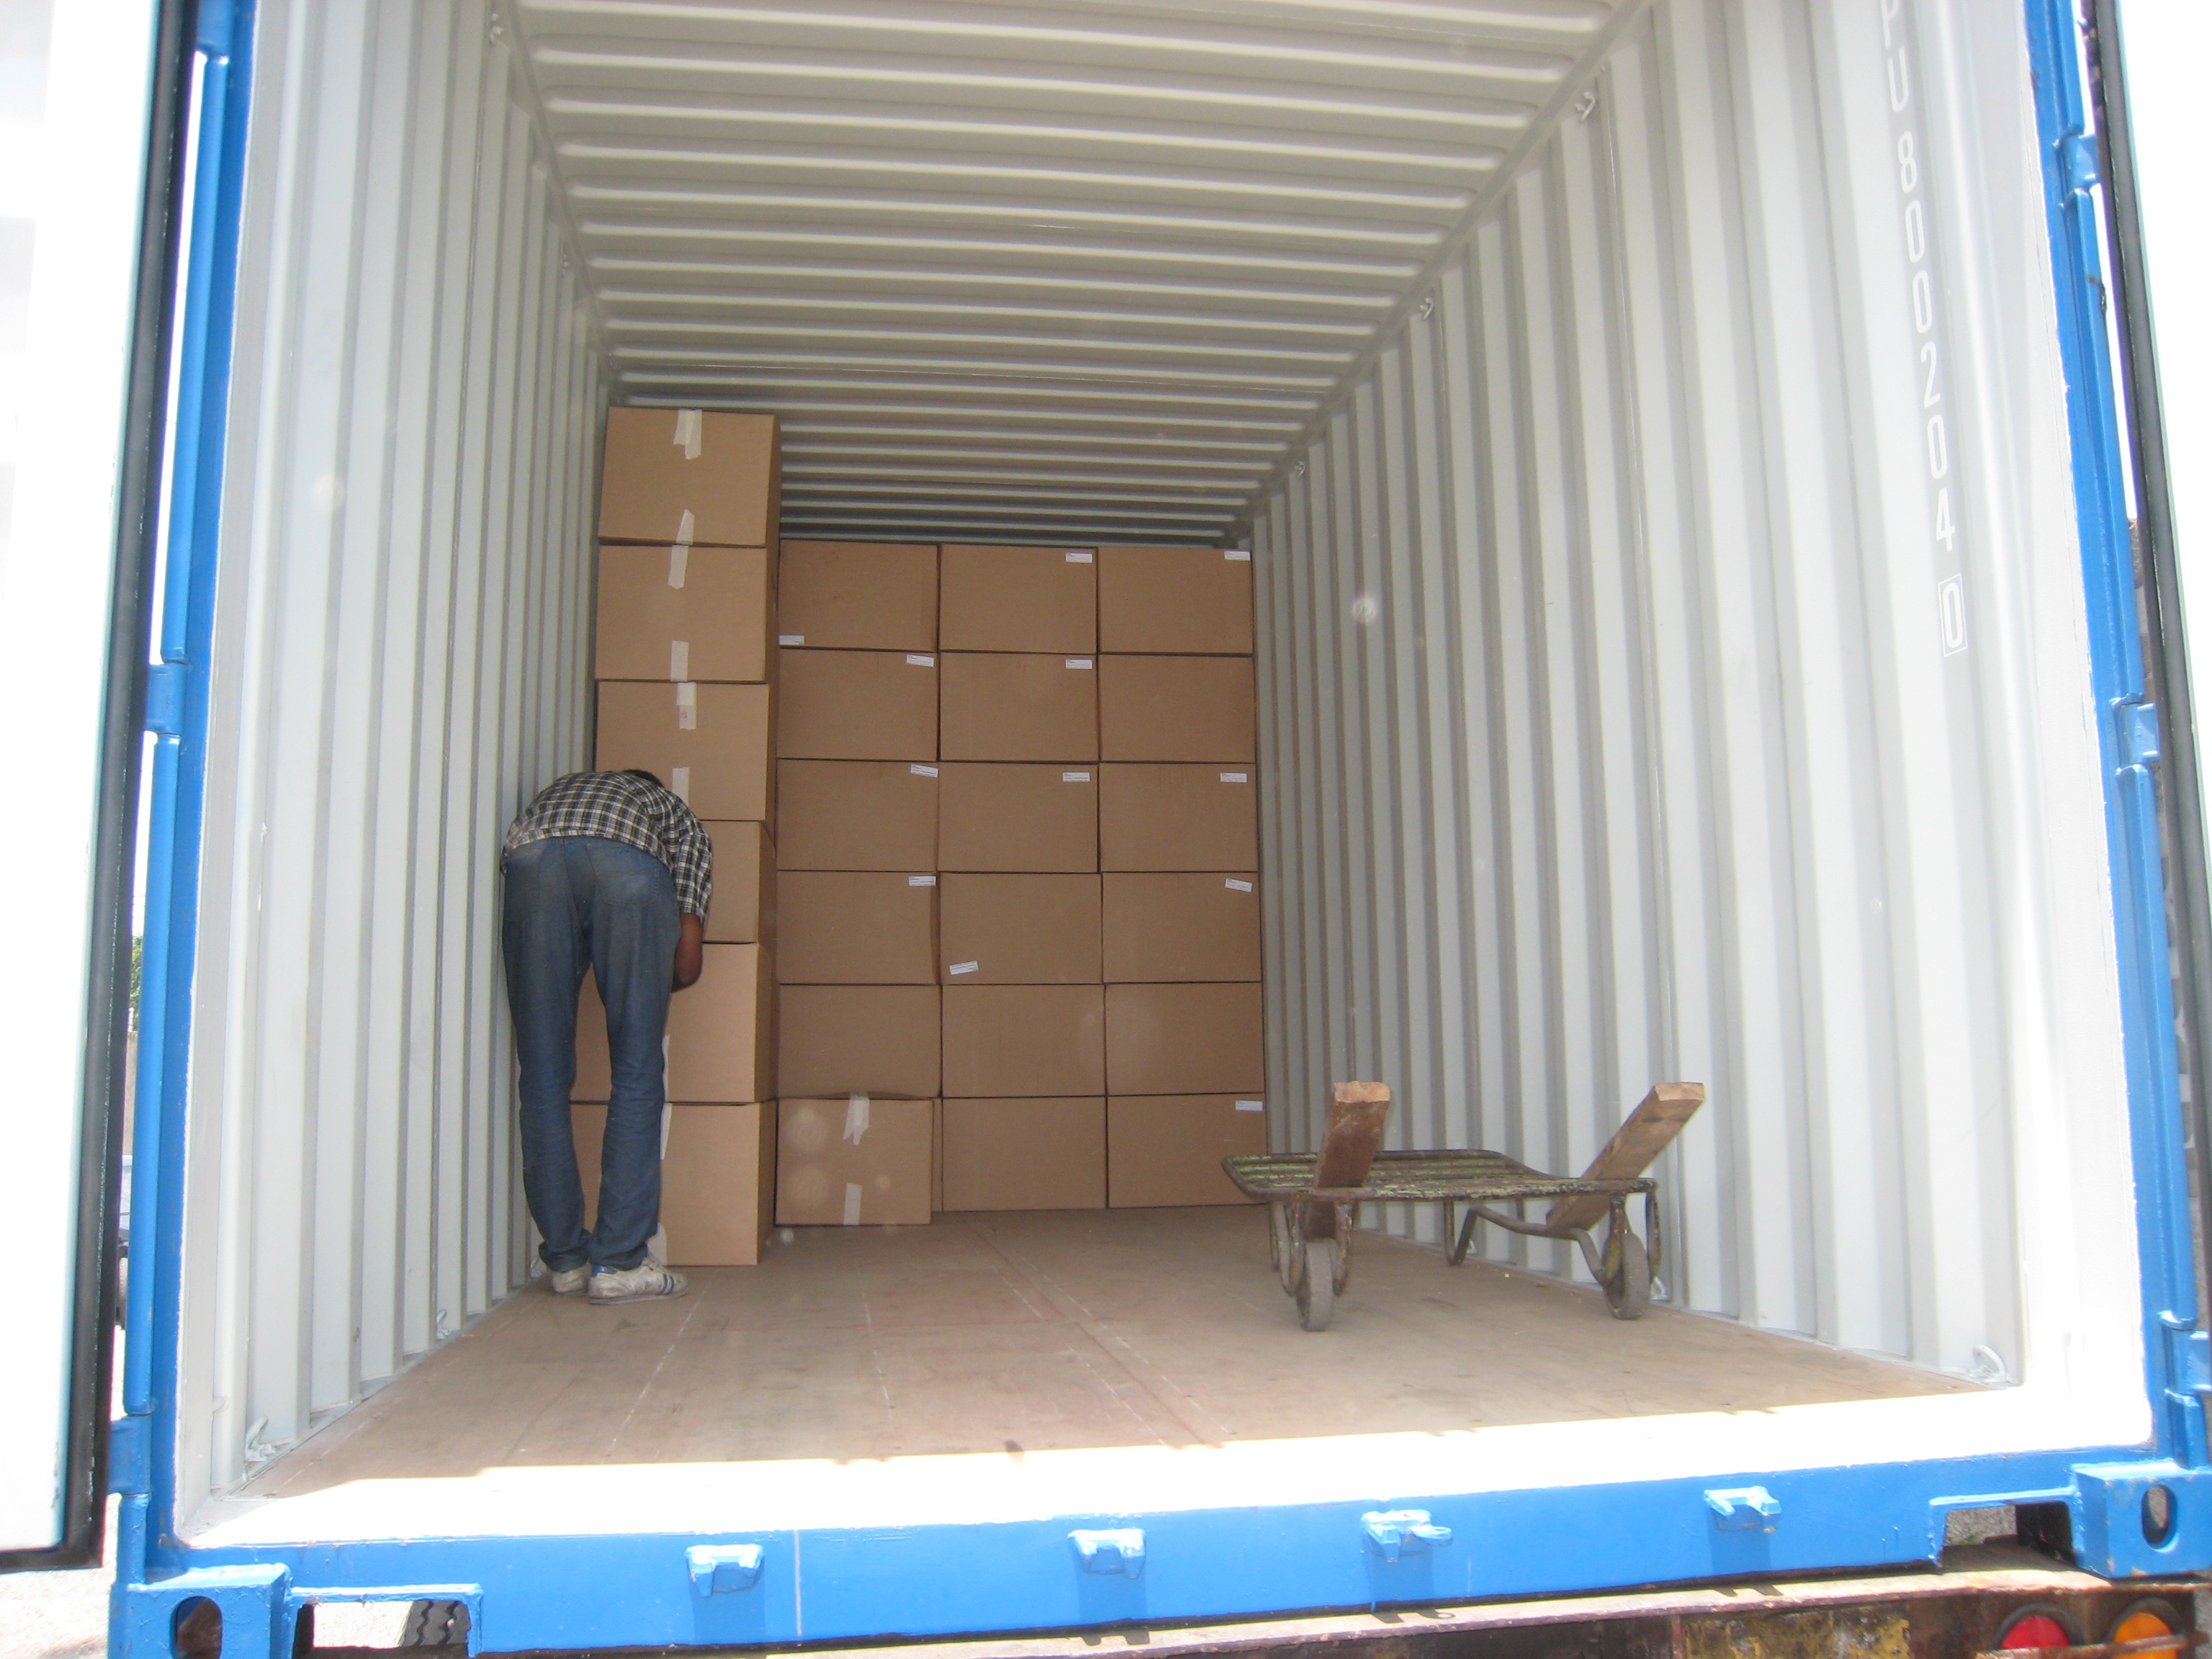 Loaded for Export 2